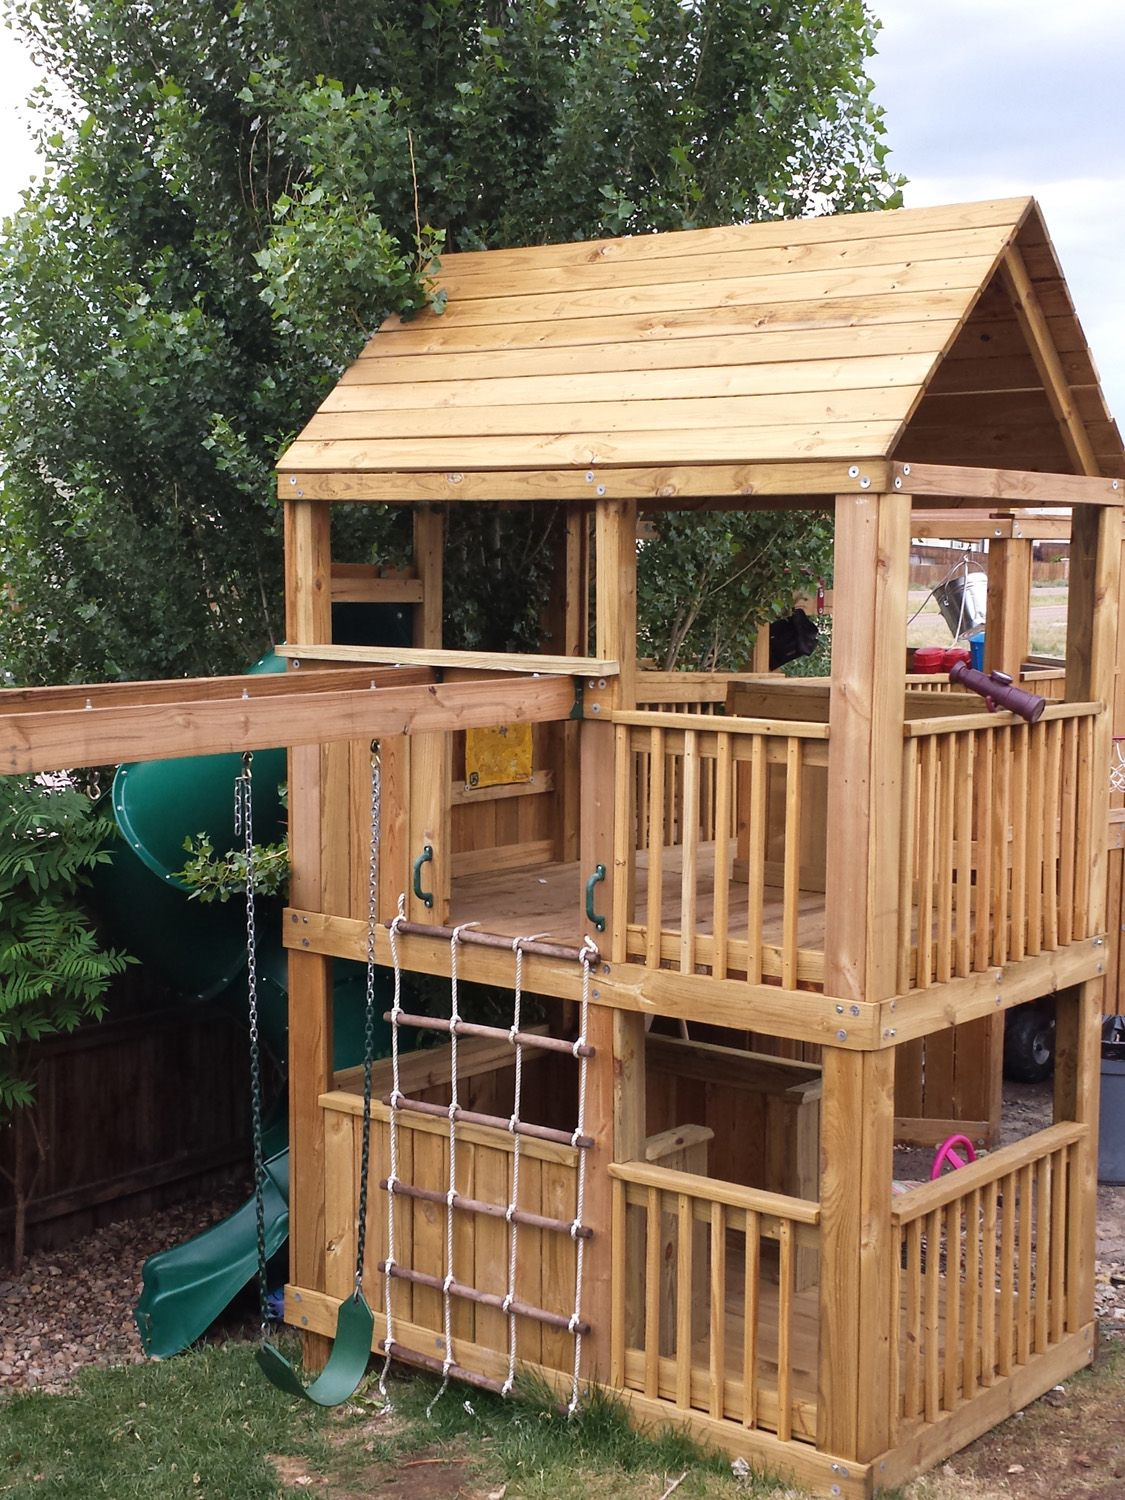 Image gallery wooden clubhouse for Wooden playhouse designs